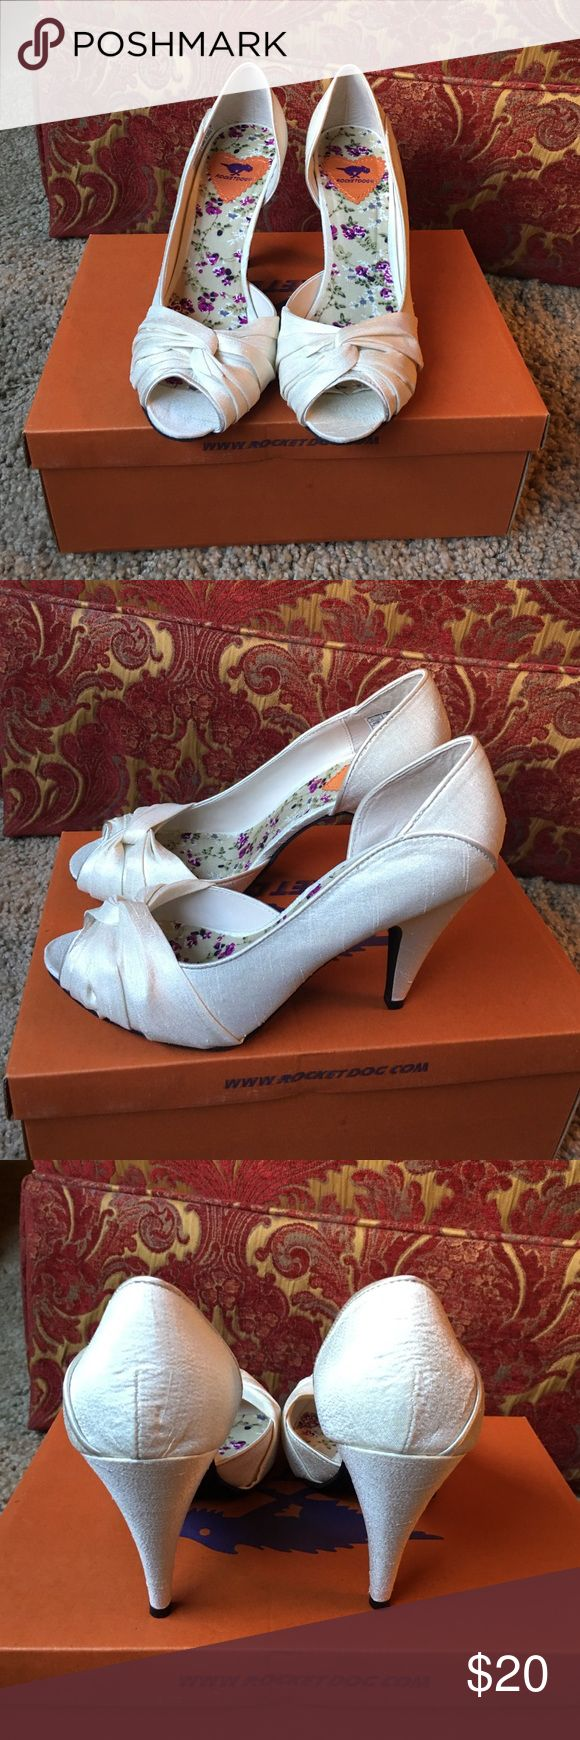 Rocket Dog pearl cream satin like heels Worn just a few hours. These pictures don't do the heels justice. Their a beautiful pearl cream satin like material. In PERFECT CONDITION! Rocket Dog Shoes Heels